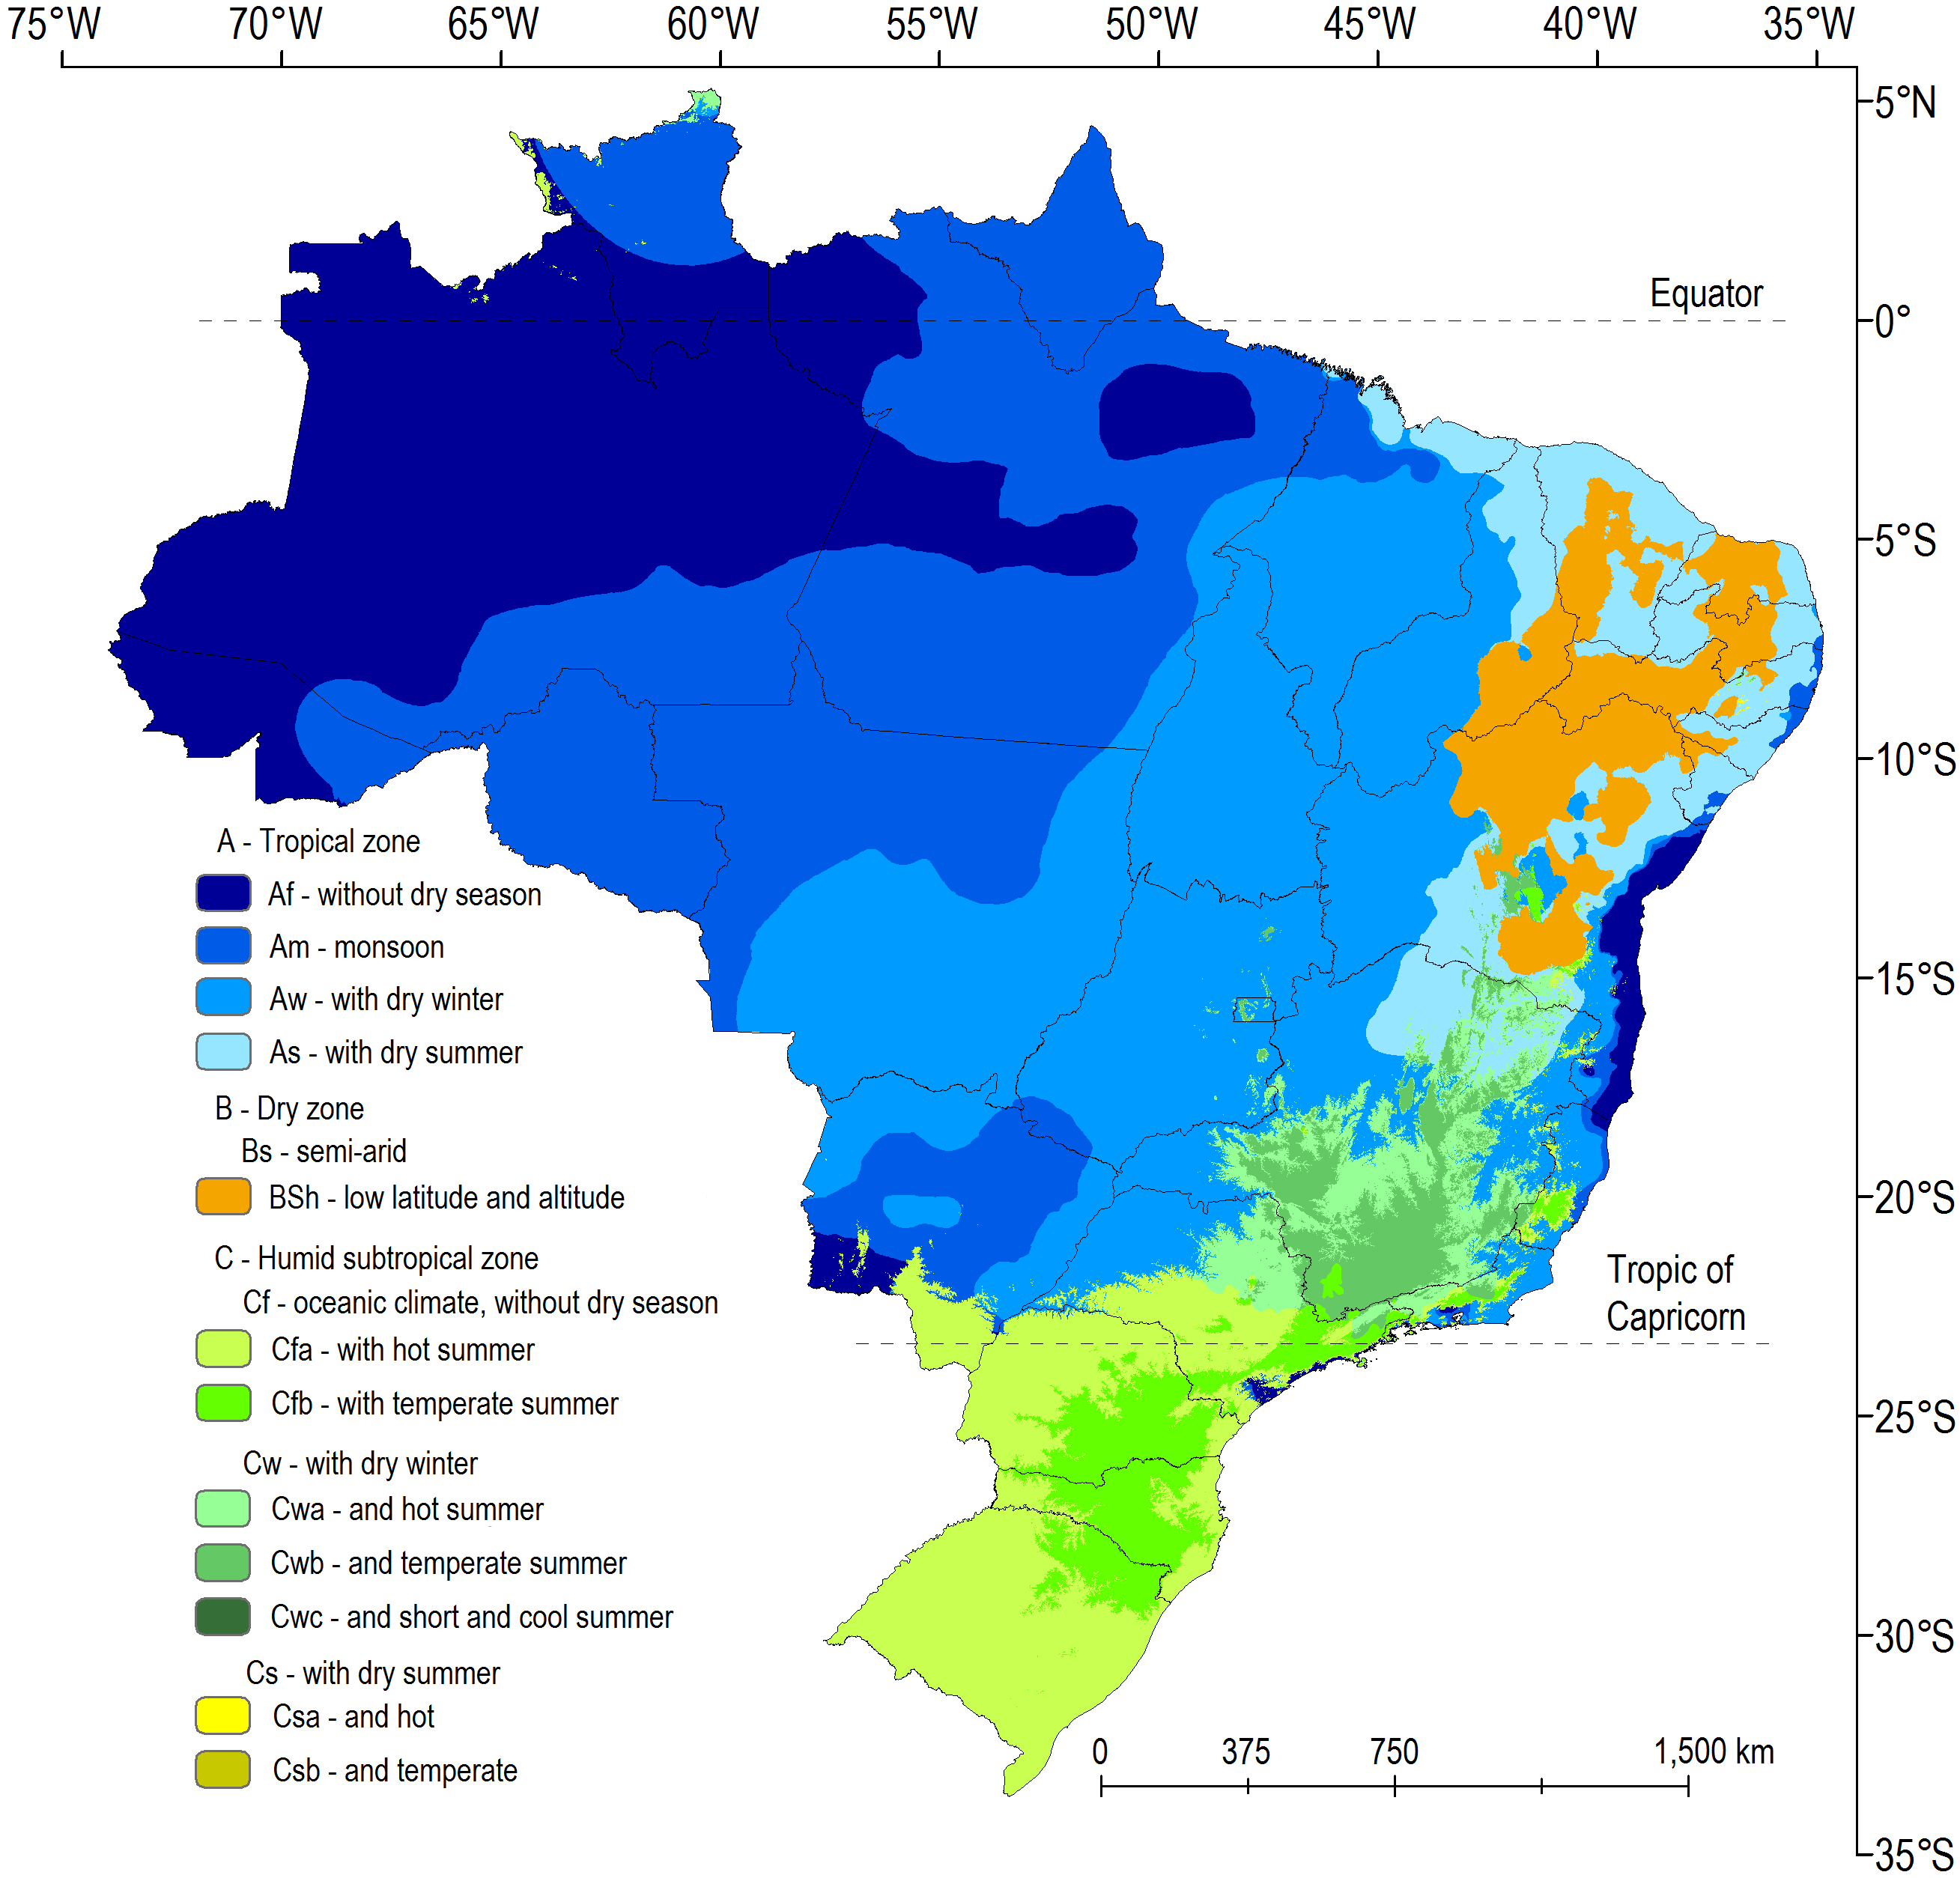 Climate Classification For Brazil, According To The K Ppen Criteria